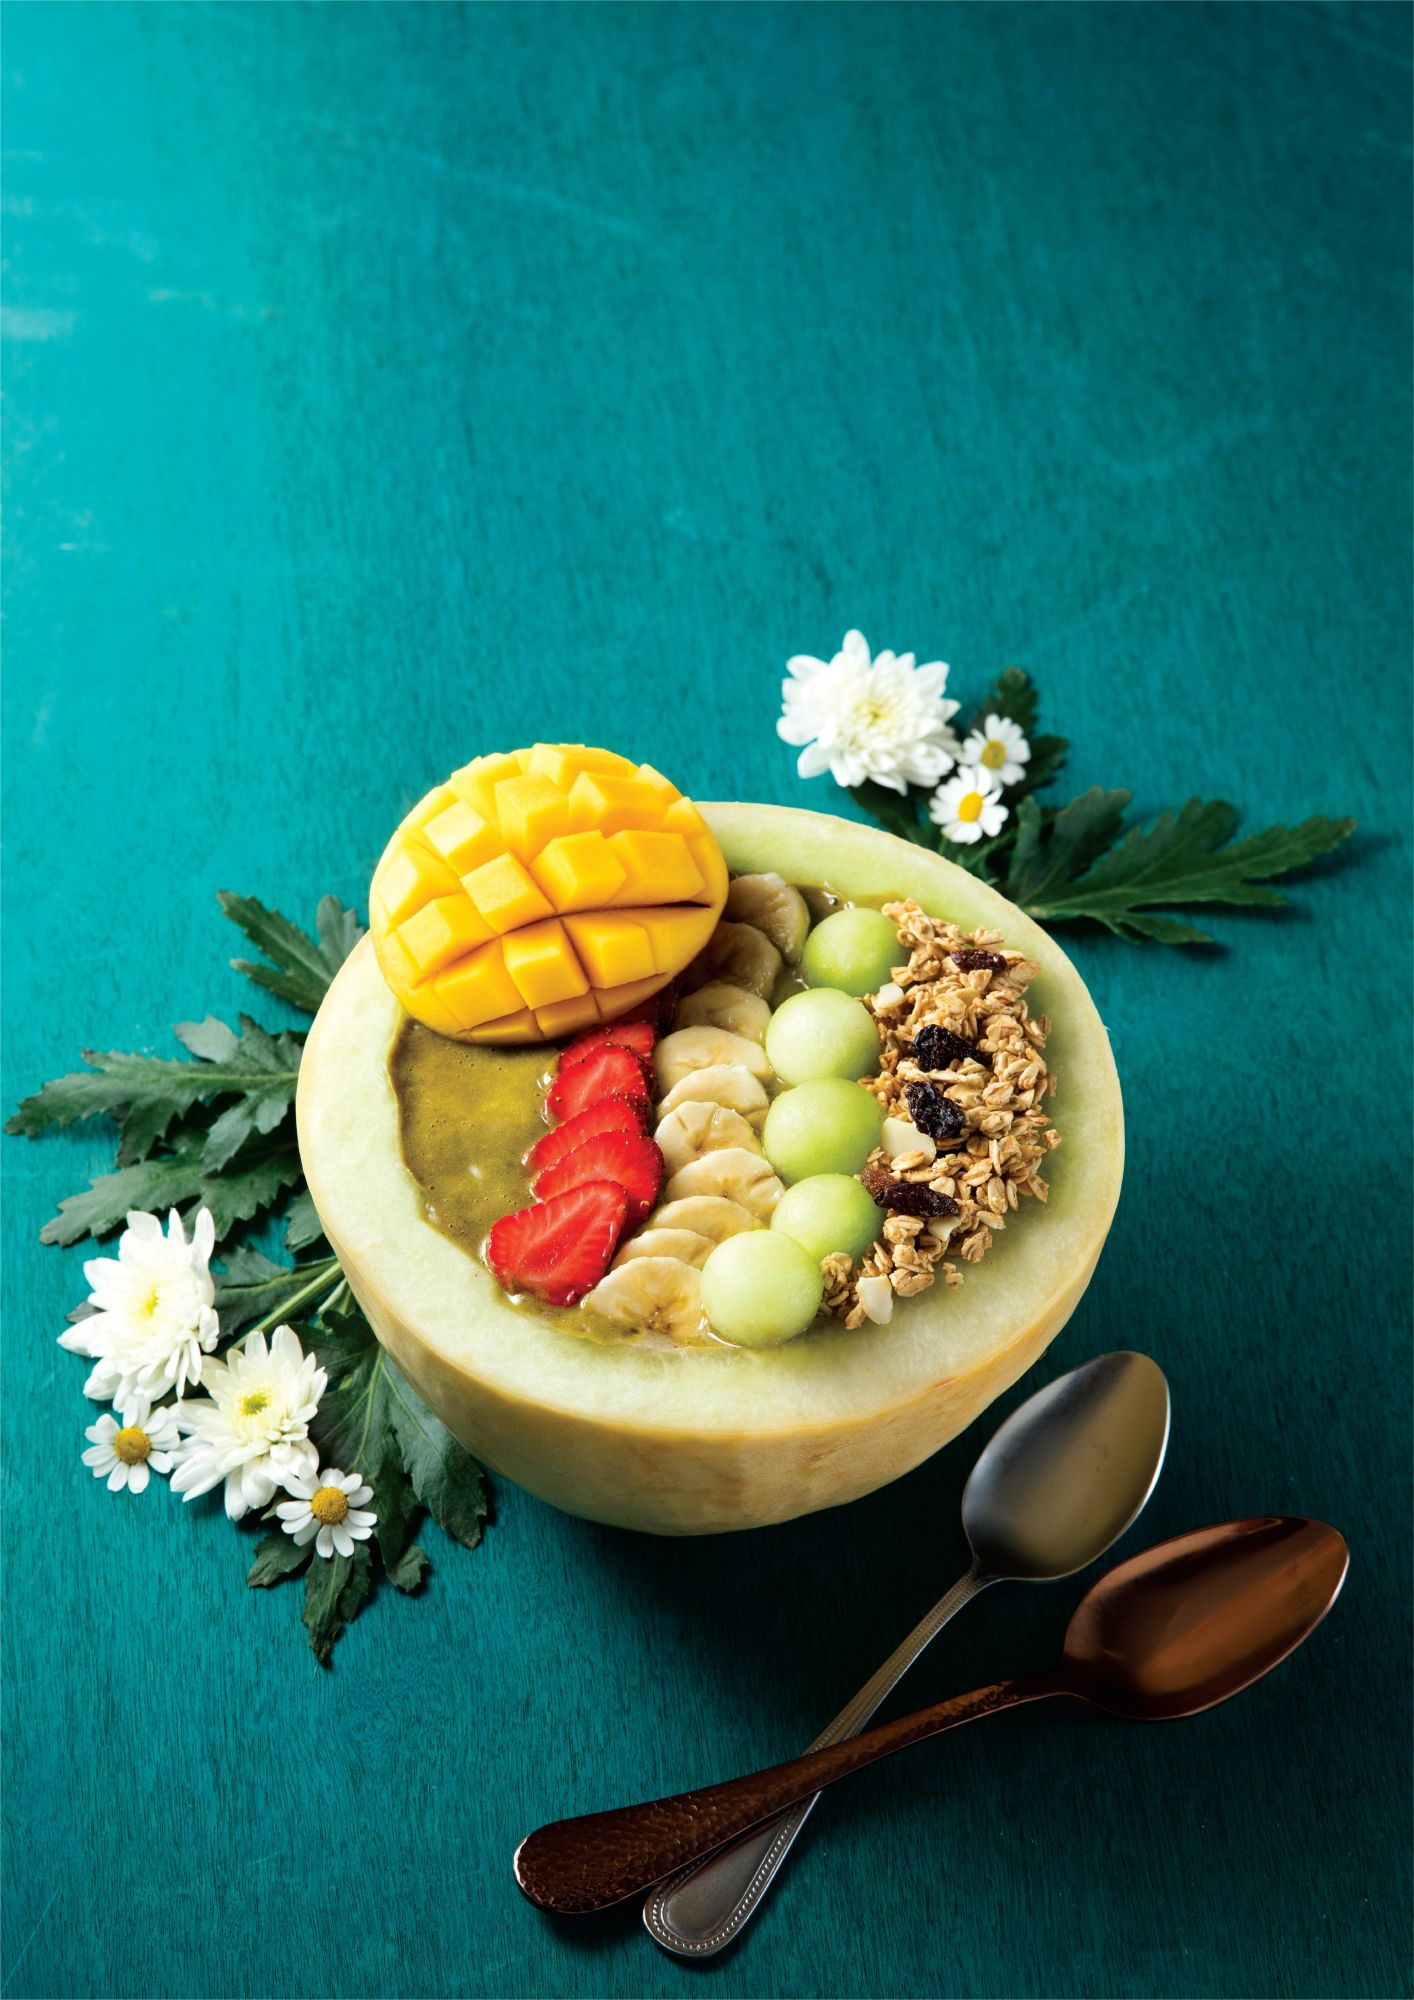 5 Superfood Smoothie Bowls To Try This Summer | Hong Kong Tatler